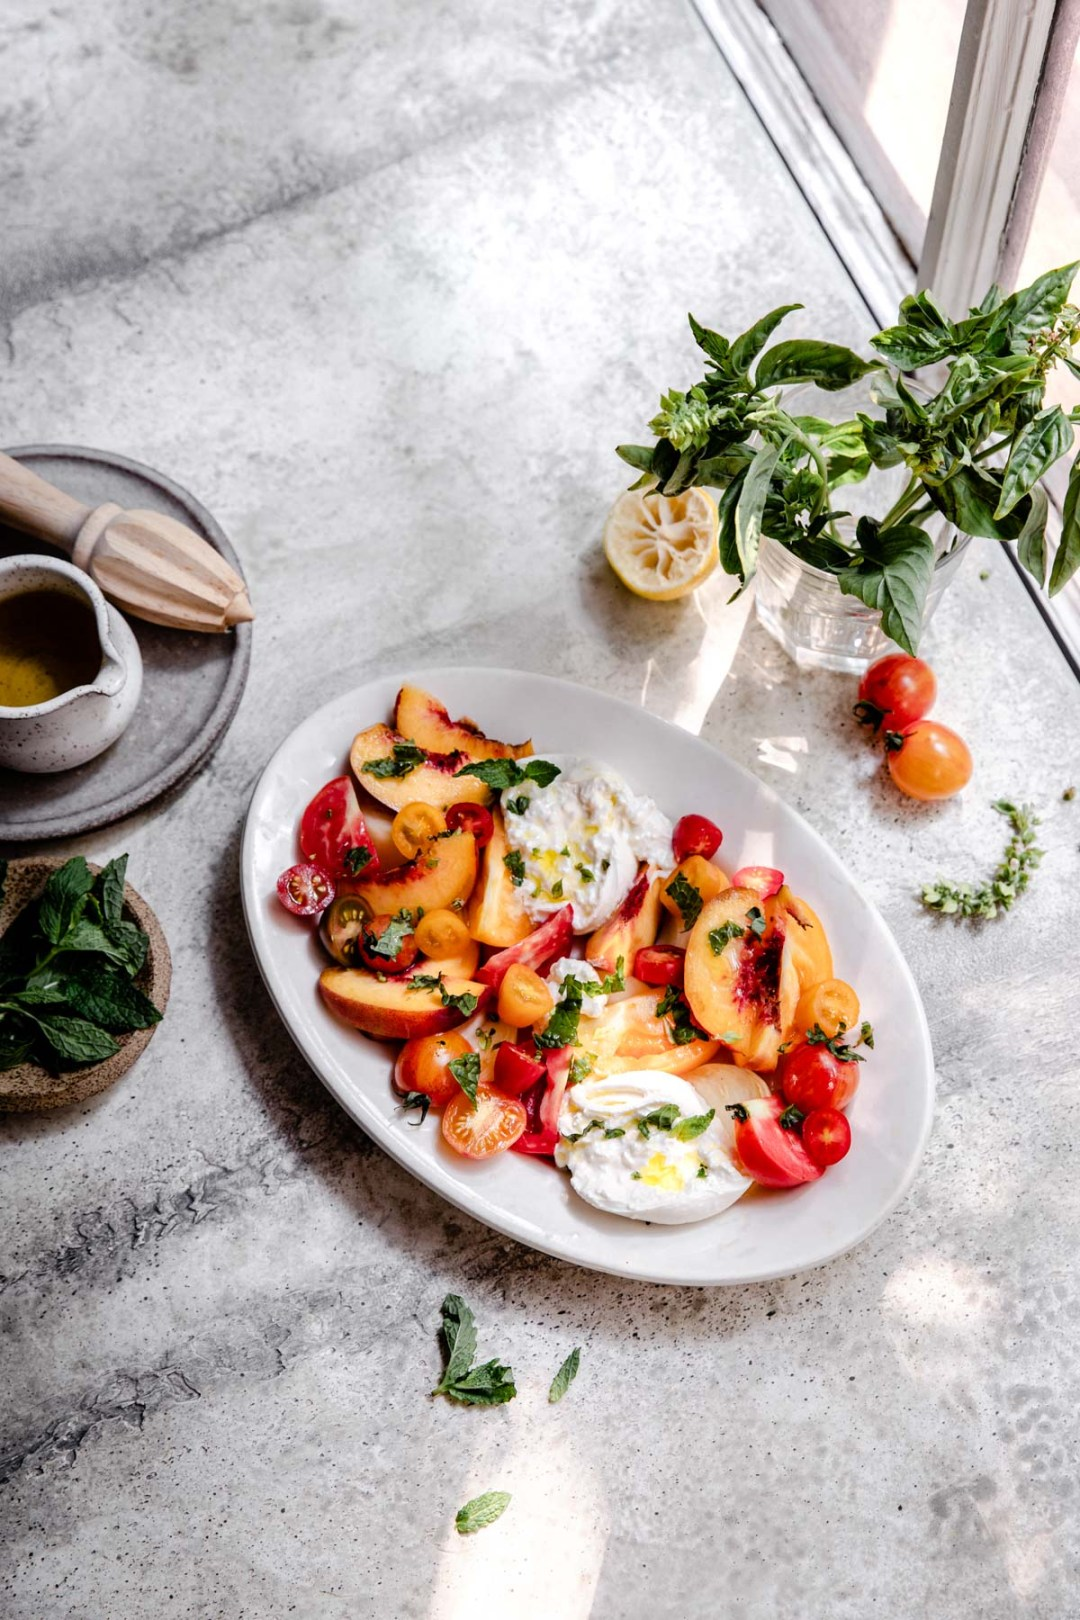 A quick and easy late summer salad of ripe peaches and tomatoes with creamy burrata and a sprinkling of fresh herbs. Top it all off with golden olive oil for a gluten free summer side dish.